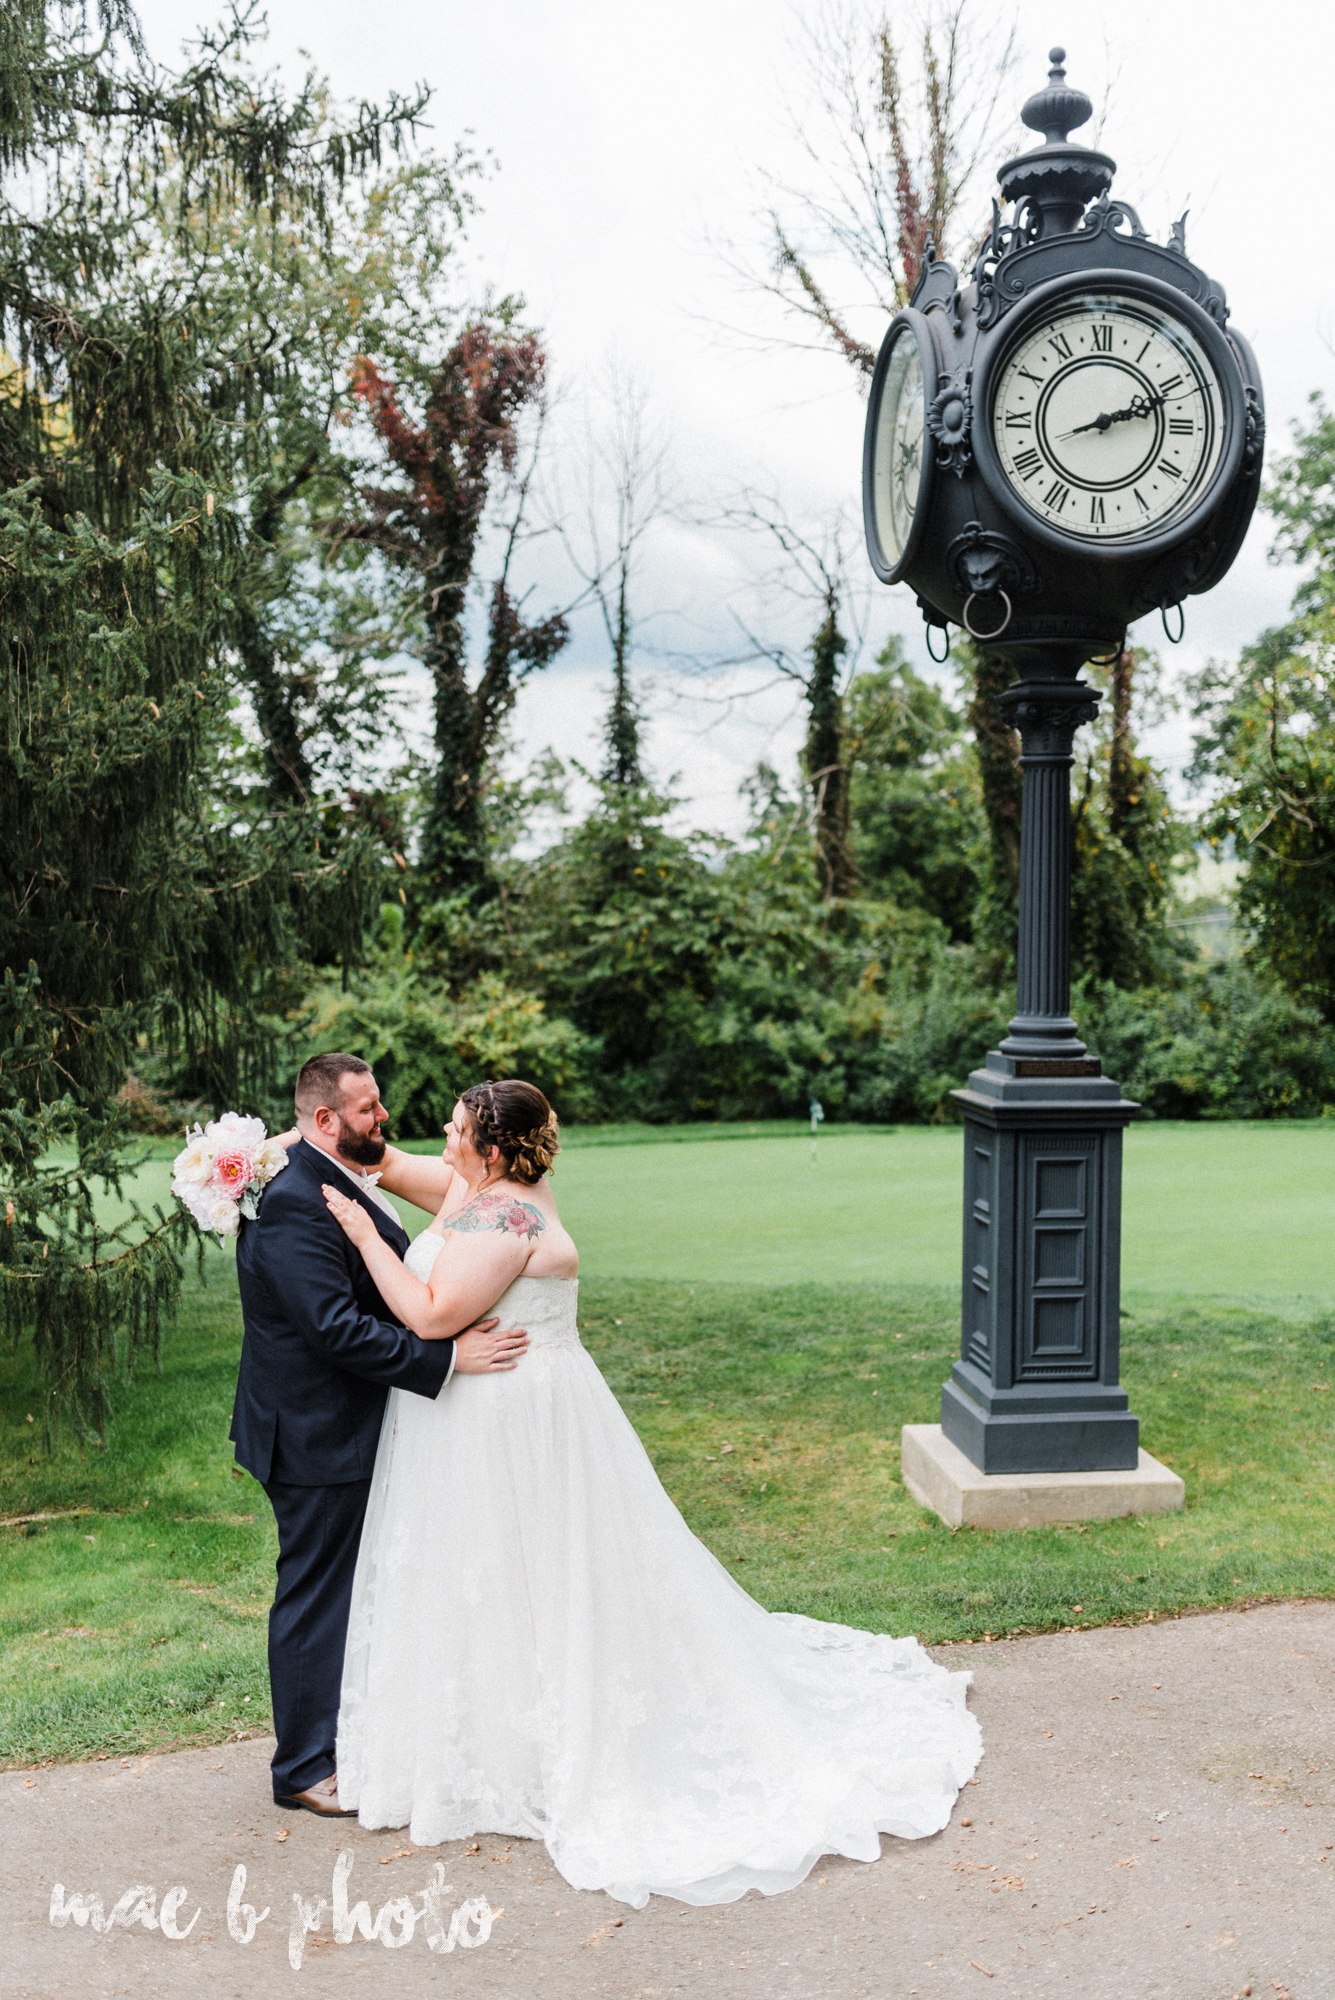 Kristina and ryan's personal vintage glam fall wedding at disalvo's station restaurant and the arnold palmer latrobe country club in latrobe, pa photographed by youngstown wedding photographer mae b photo-31.jpg